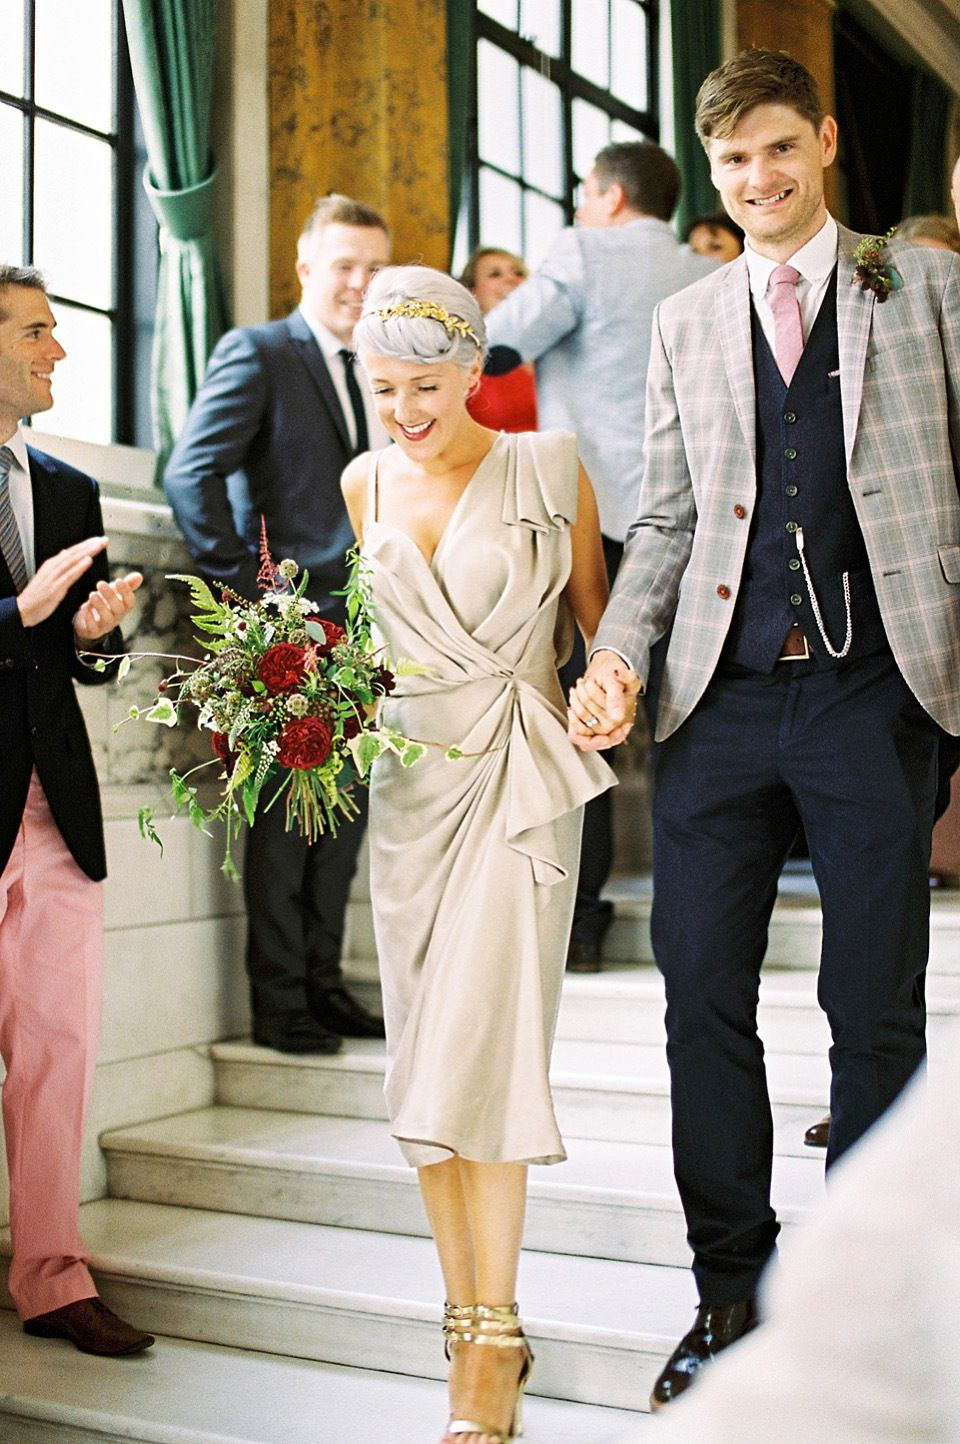 A fashion designer bride and her childhood sweetheart groom bodas